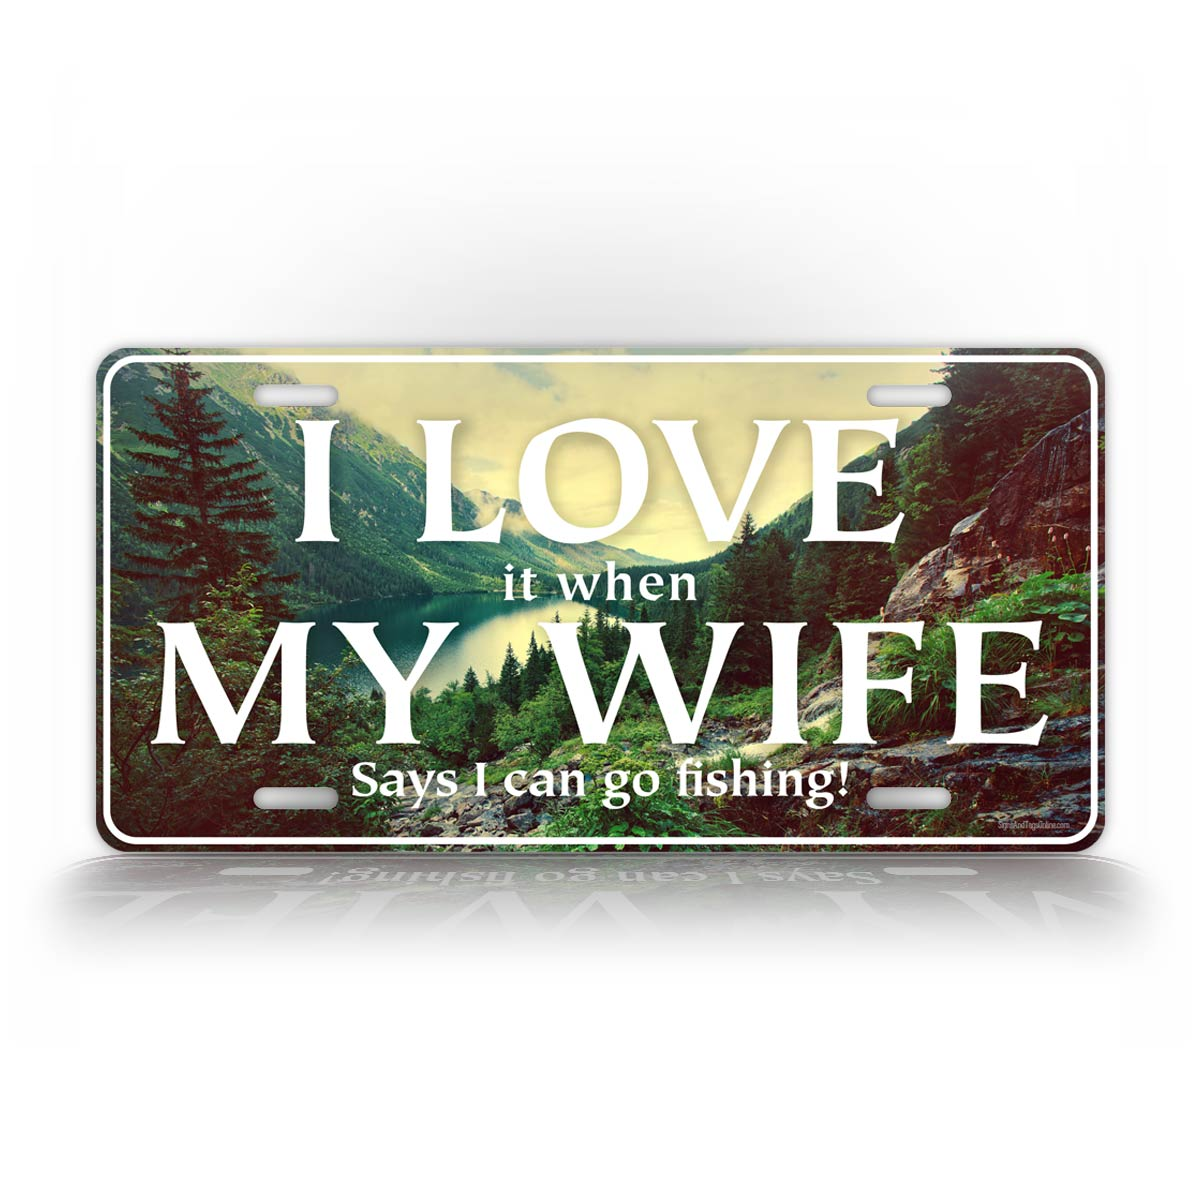 Funny Fishing License Plate With Nature Photo Background